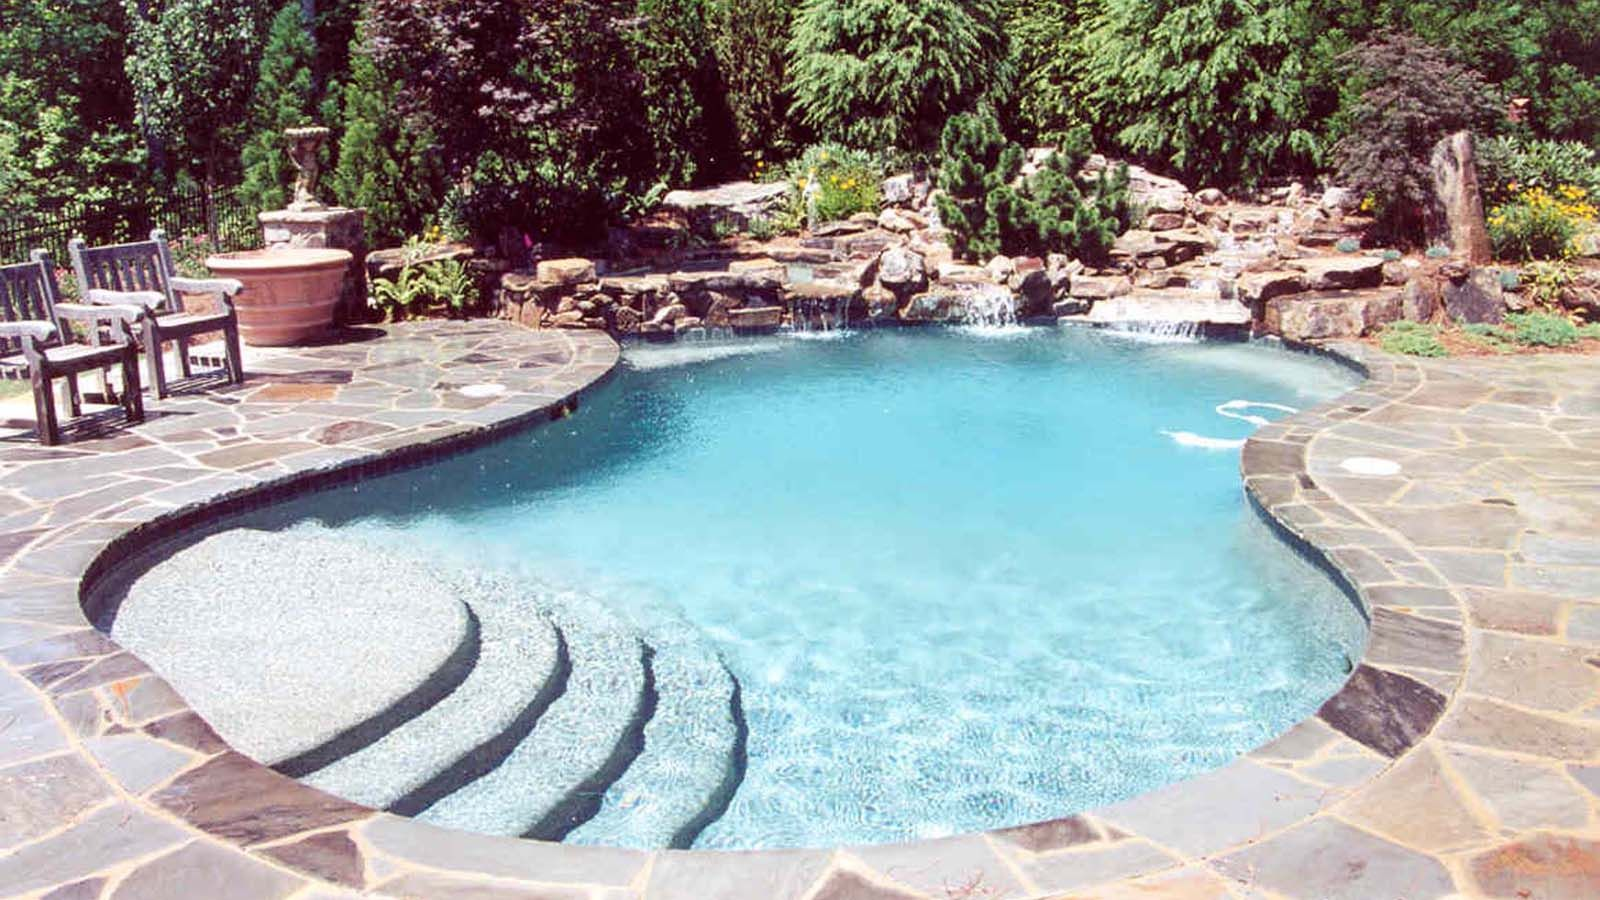 Aqua design pools spas llc natural pool ideas for Aqua pool piscinas